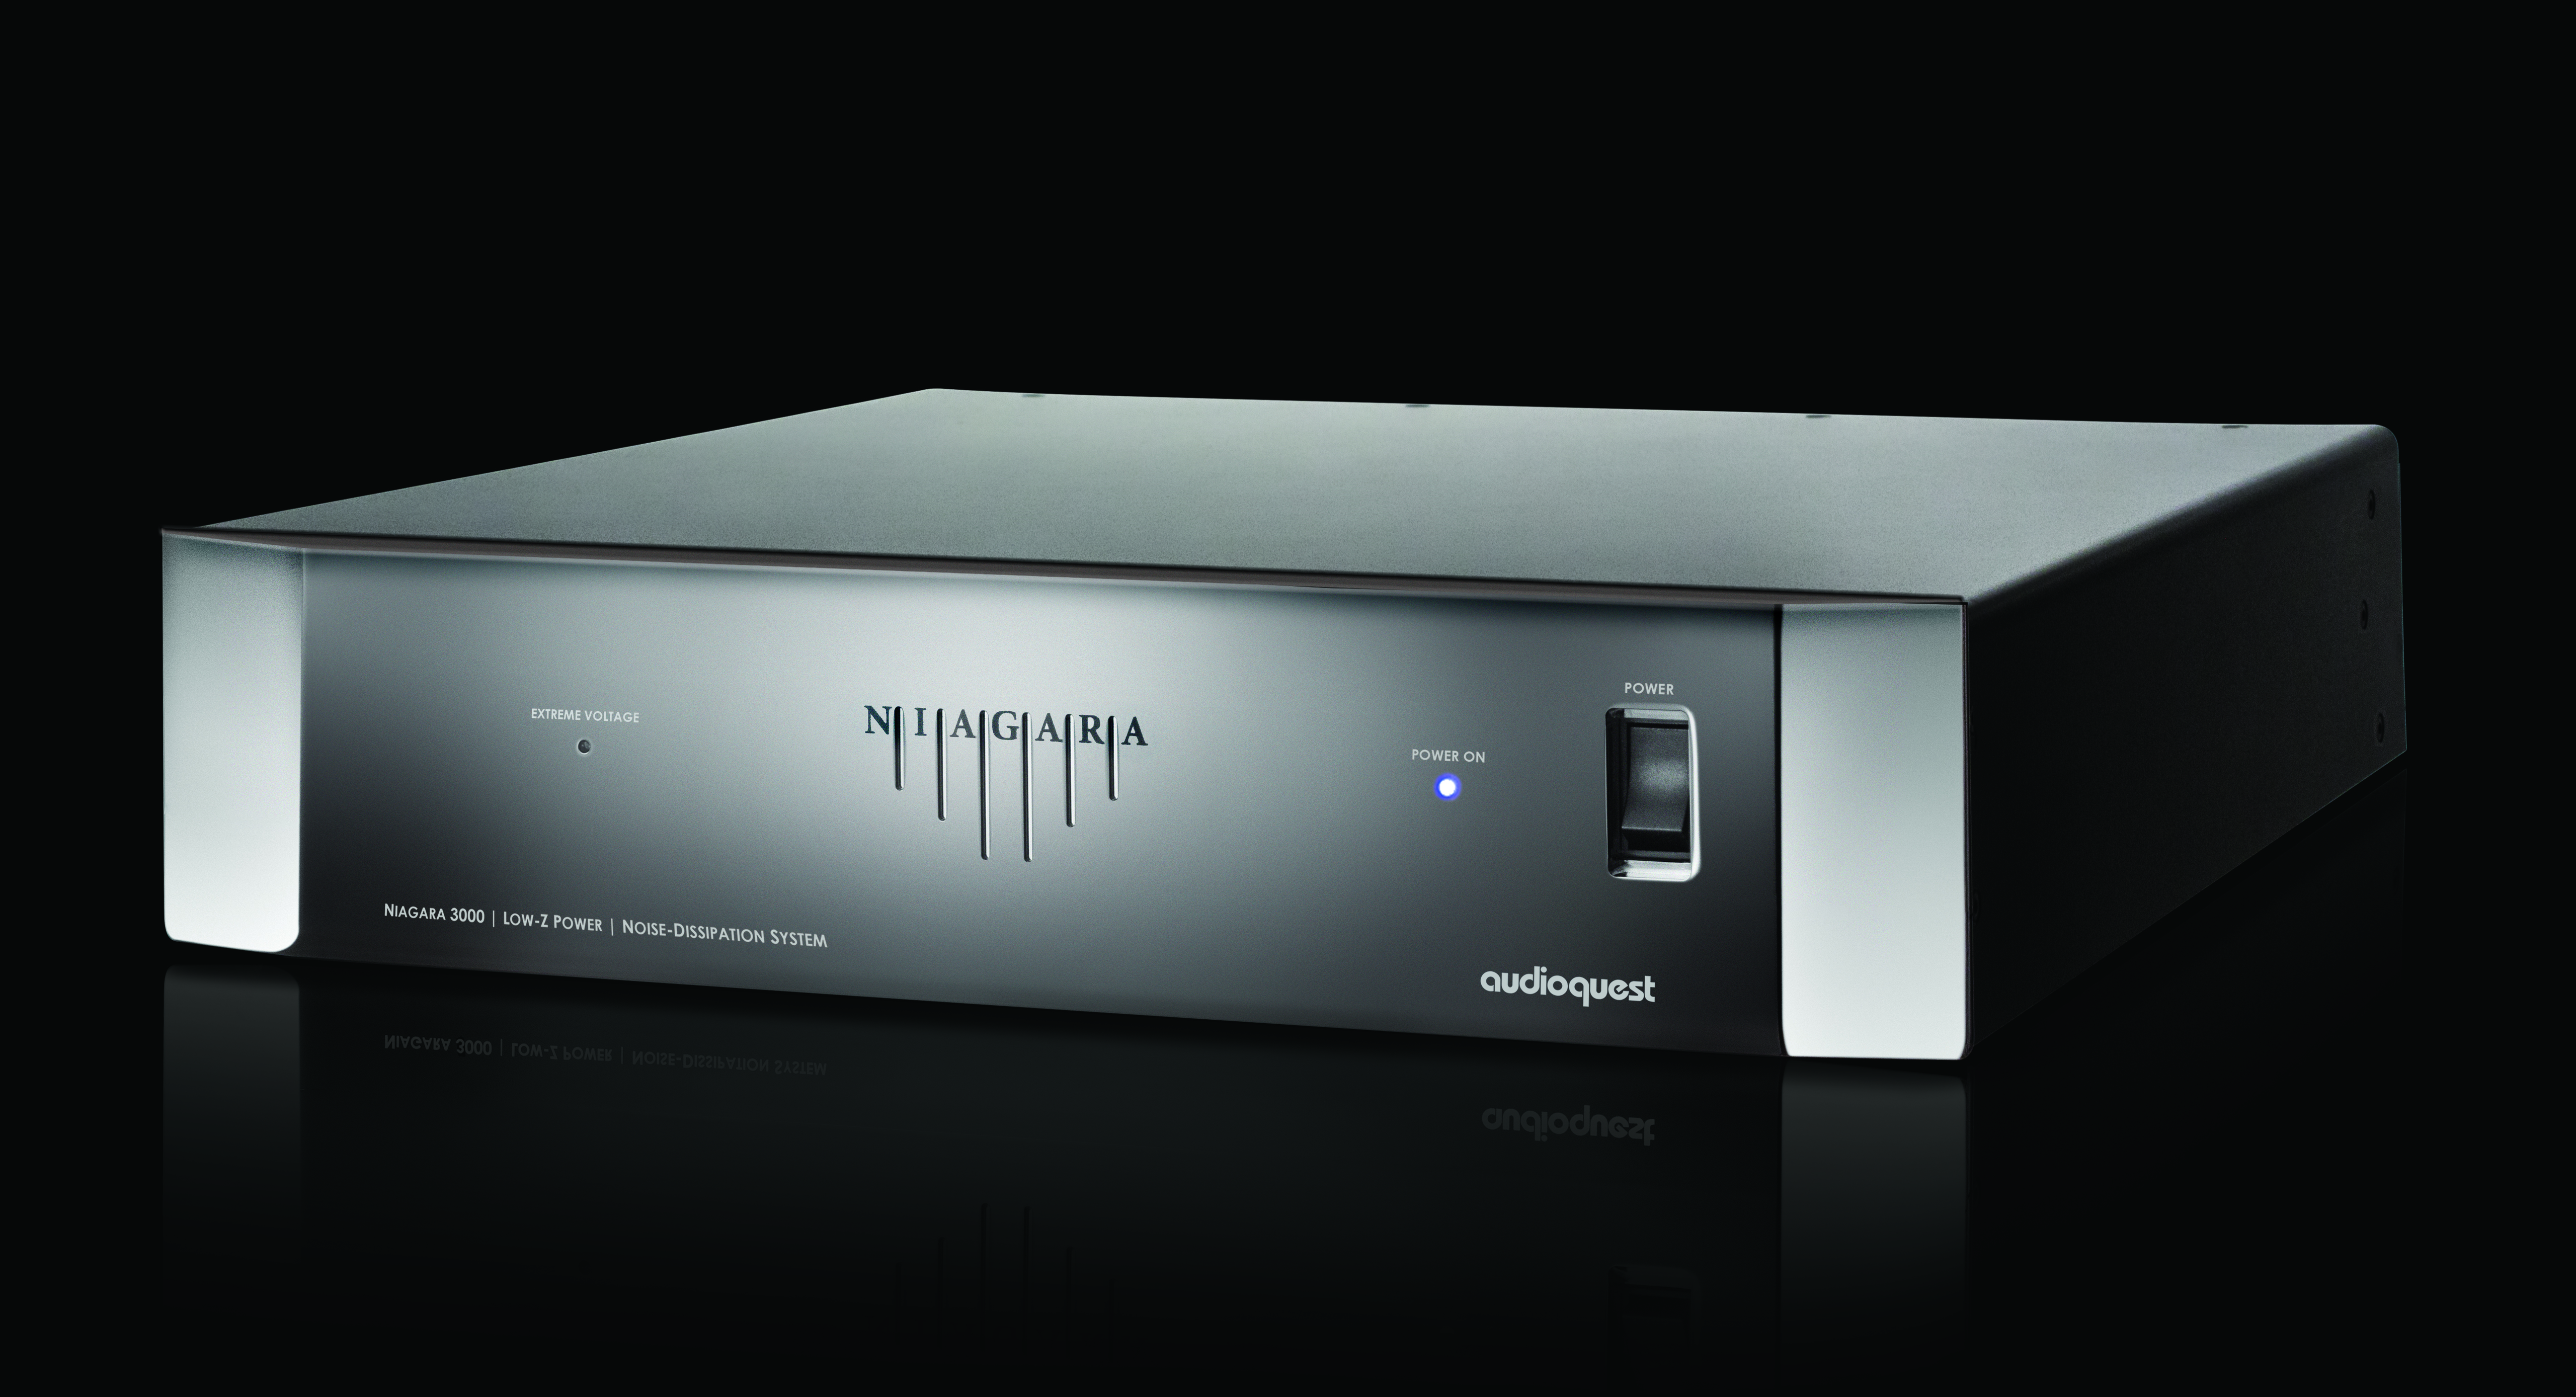 AudioQuest Niagara 3000 Low-Z Power Noise-Dissipation System